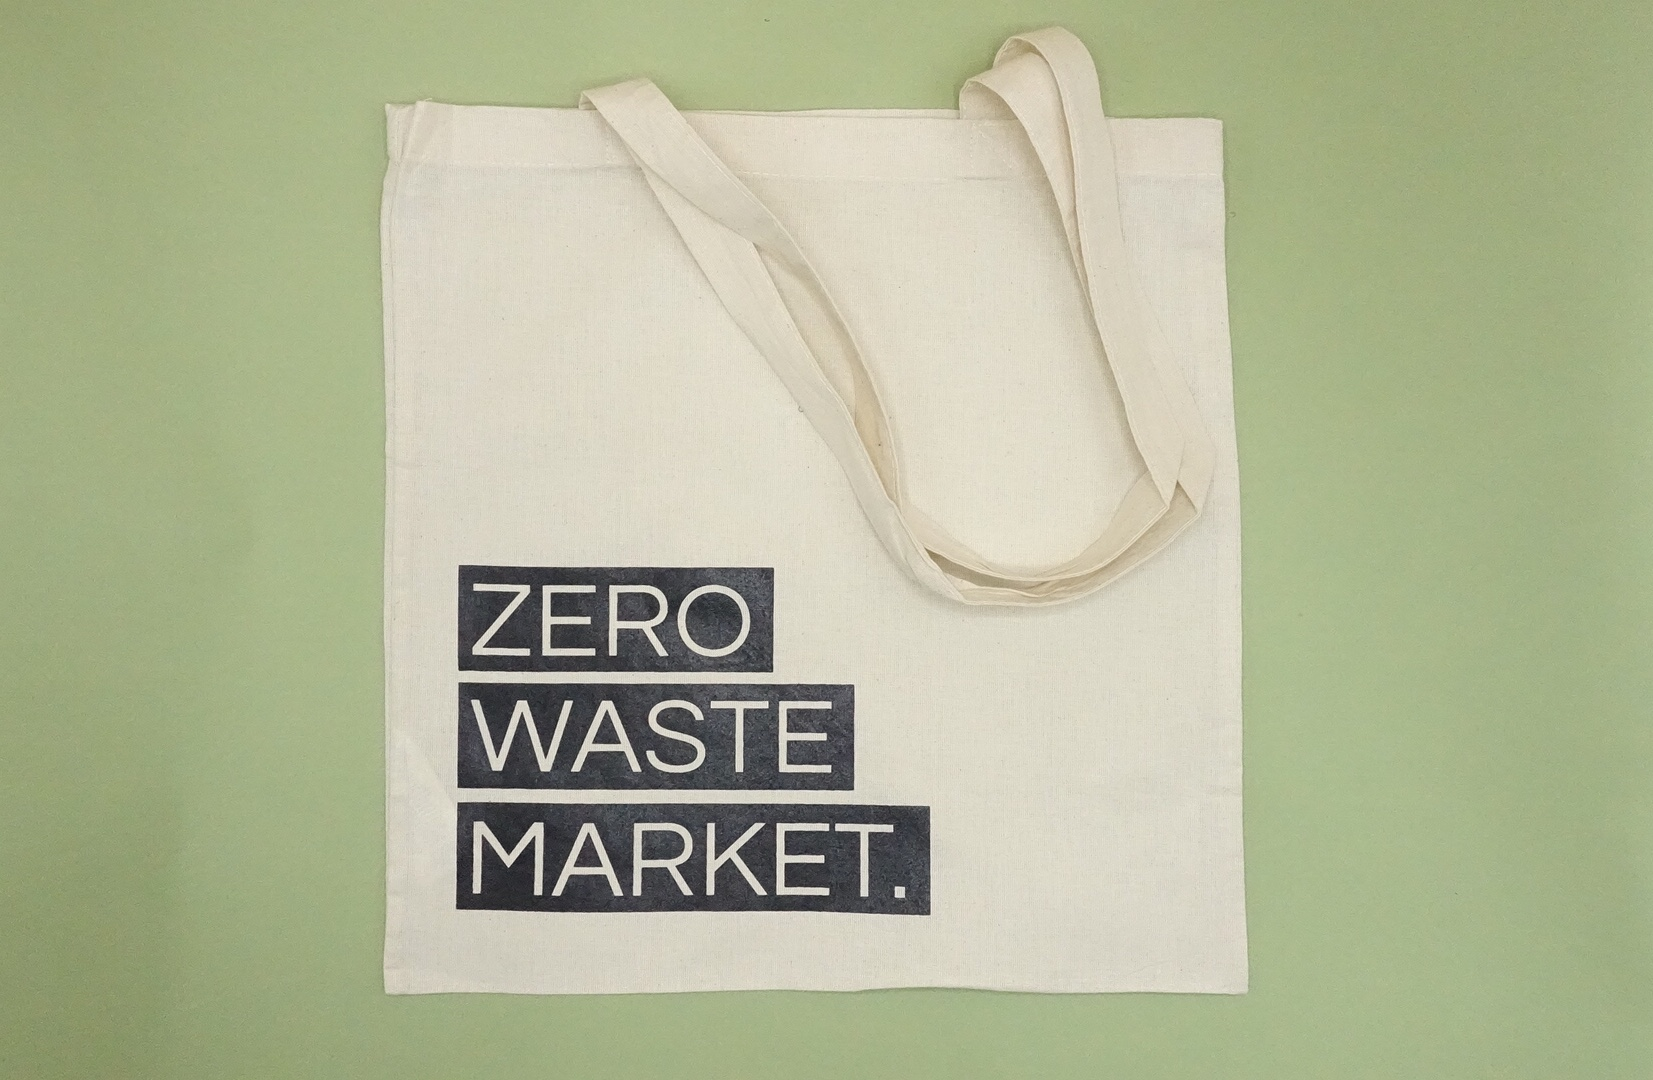 Organic Cotton Charity Tote Bag (All proceeds to charity)